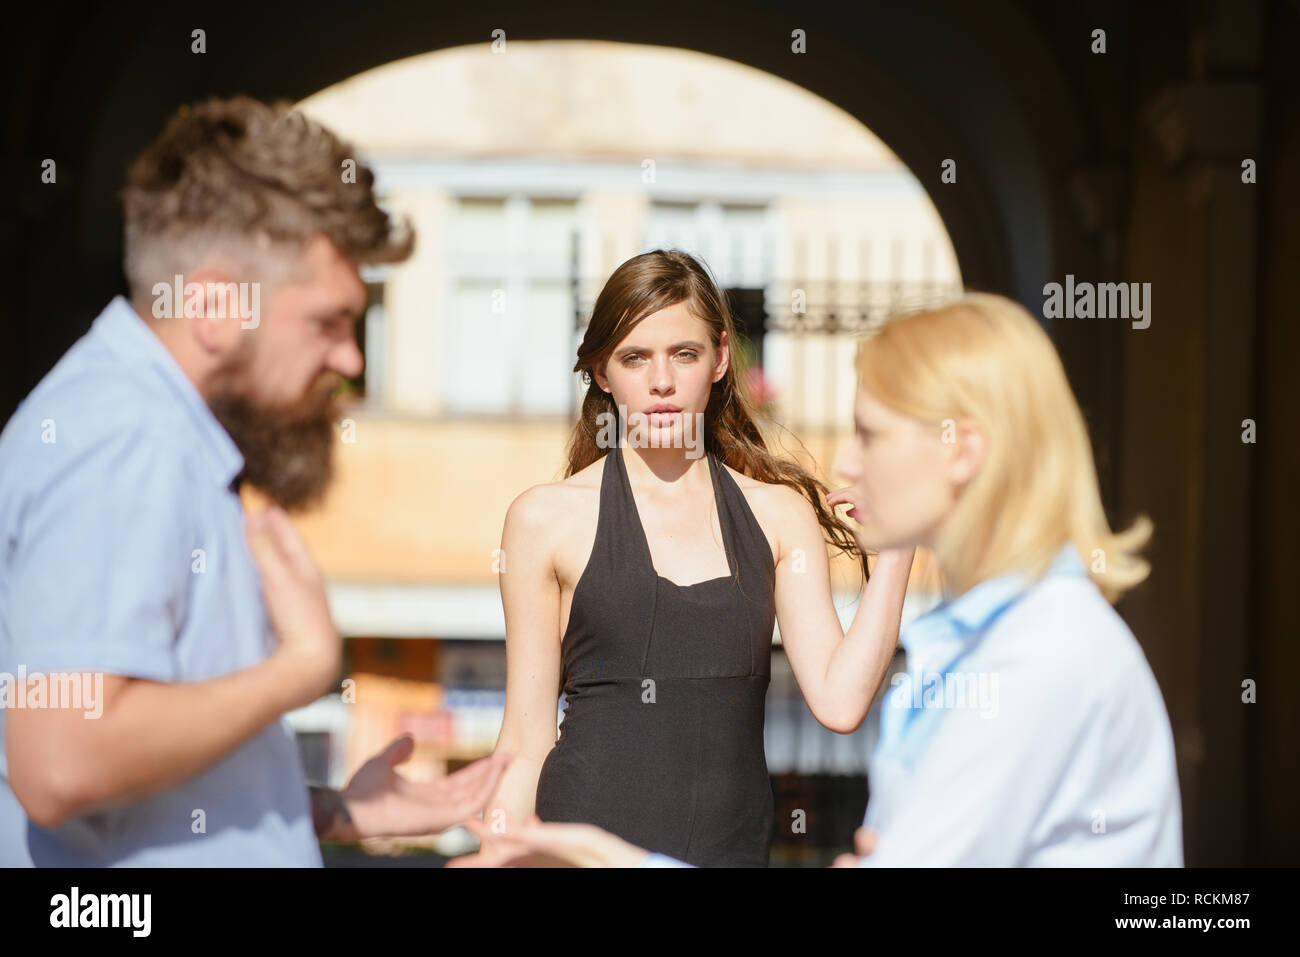 Its not my fault. Romance triangle and adultery. Jealous woman blaming unfaithful man for having a lover. Love triangle. Family conflict. Conflict in romantic relationship involving three people - Stock Image